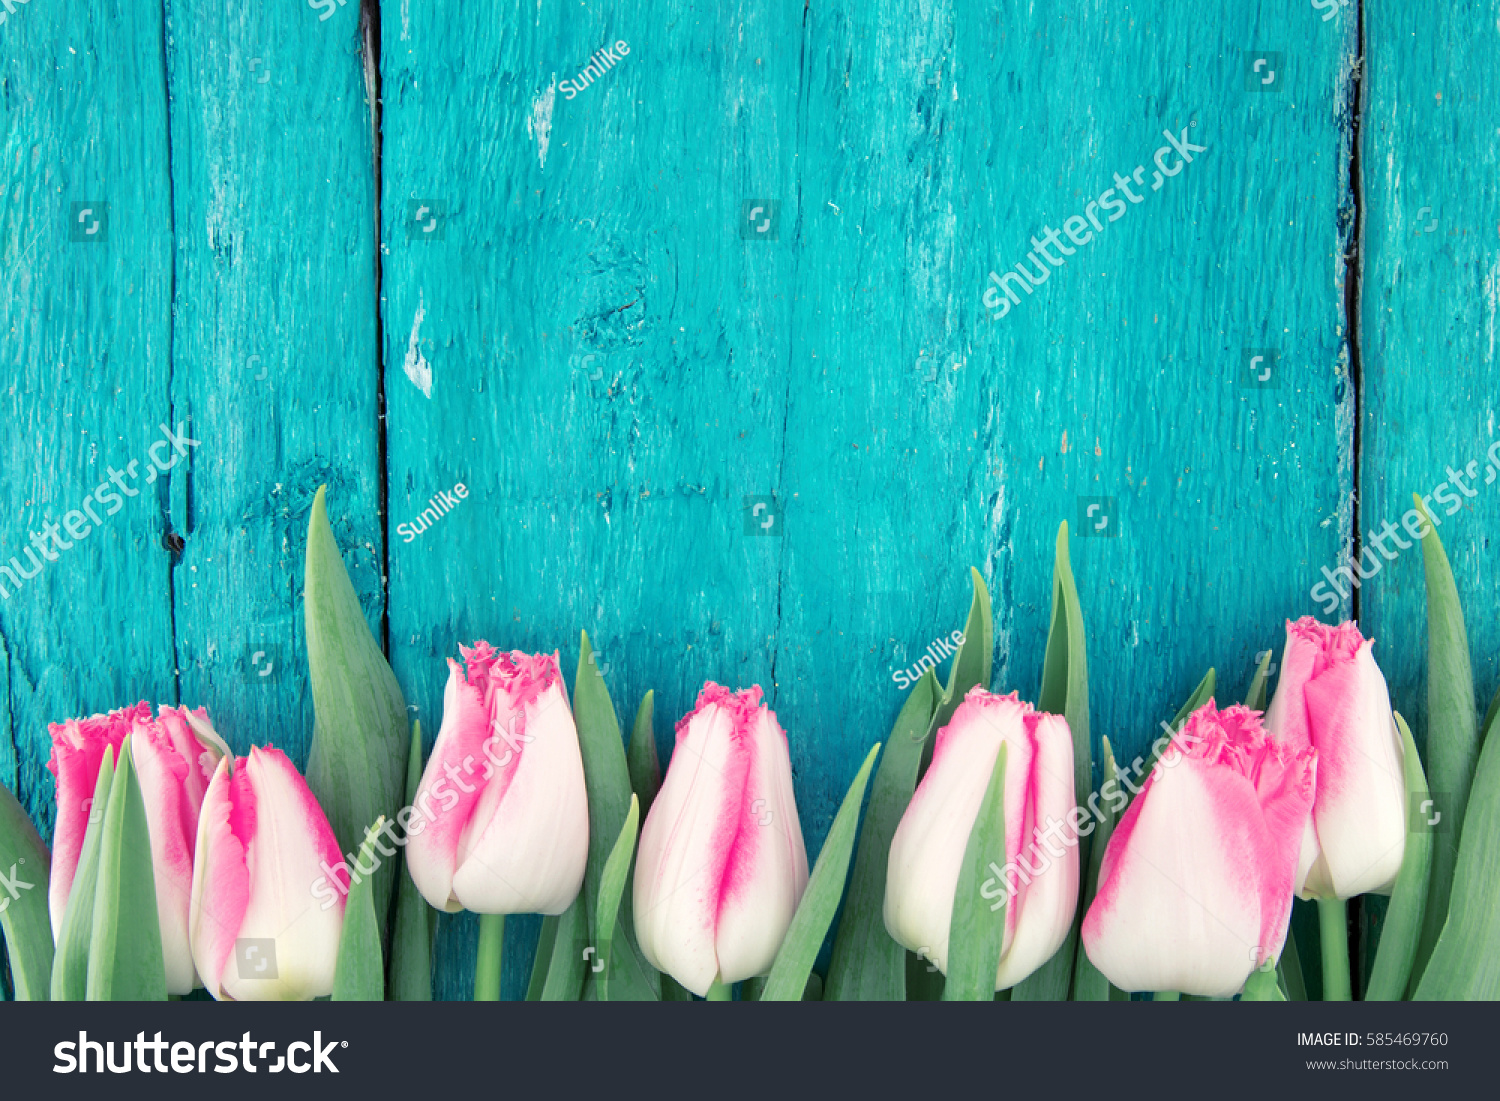 Frame of tulips on turquoise rustic wooden background. Spring flowers. Spring background. Greeting card for Valentine's Day, Woman's Day and Mother's Day. Top view. #585469760